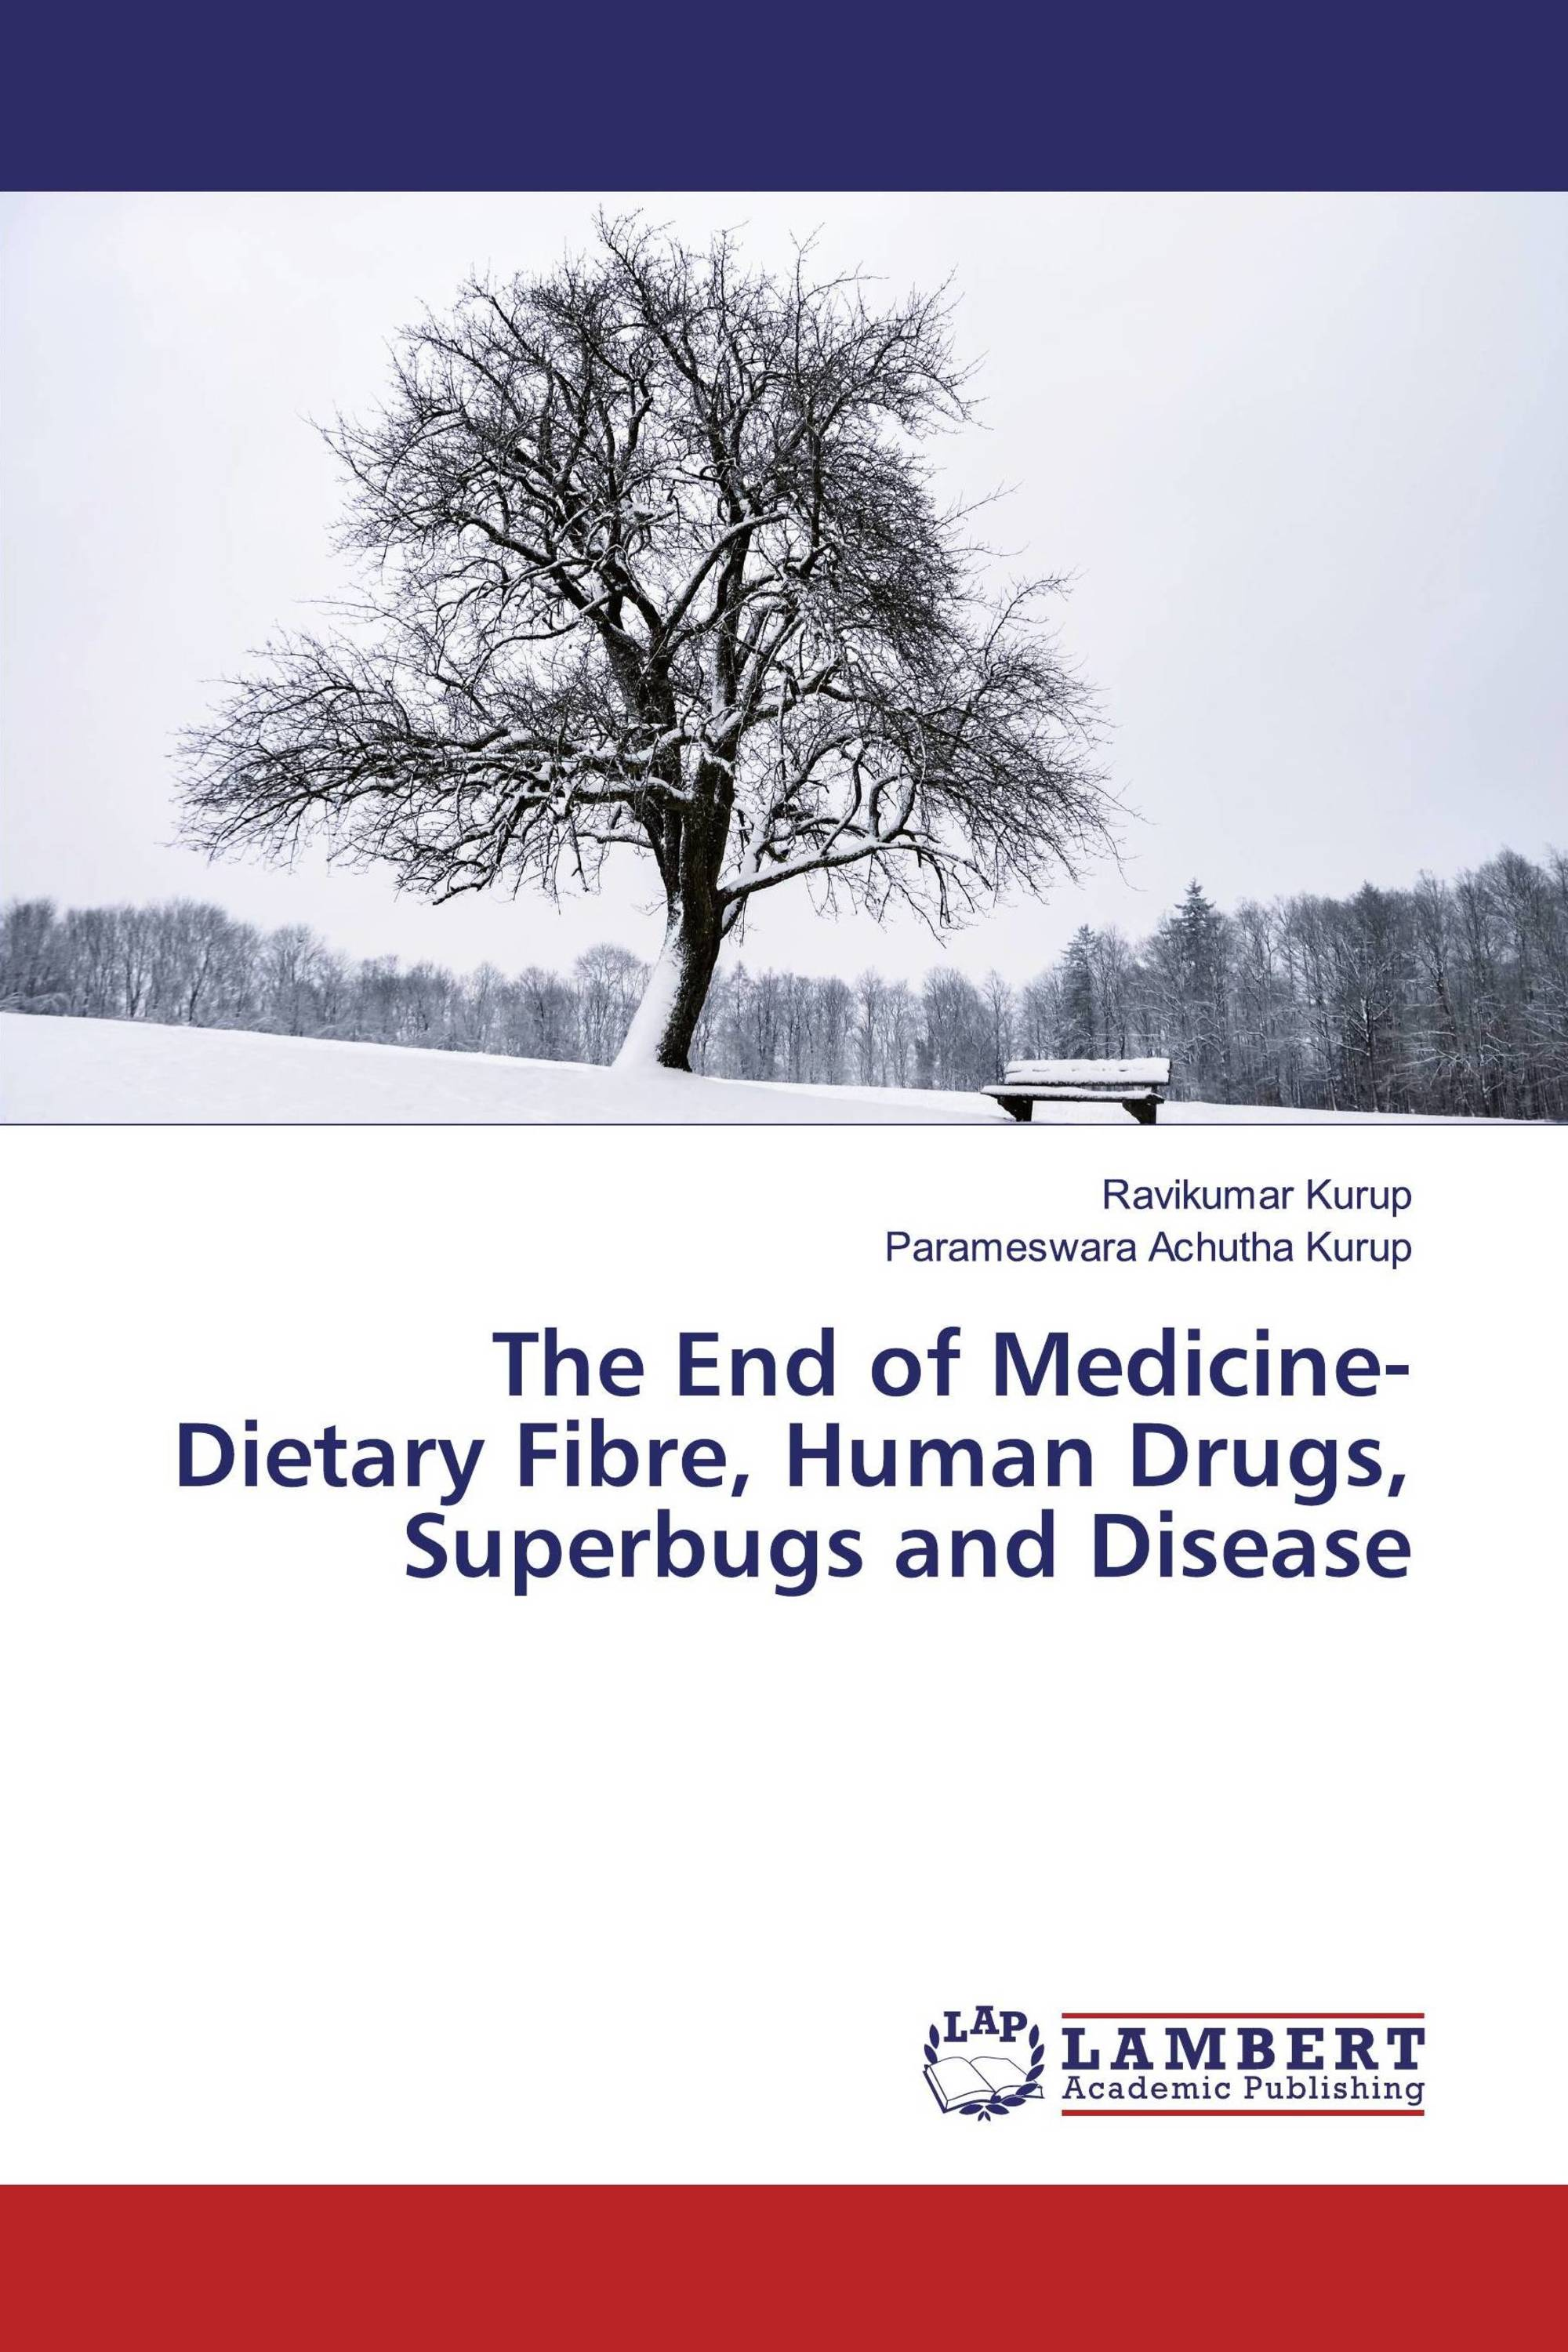 The End of Medicine- Dietary Fibre, Human Drugs, Superbugs and Disease